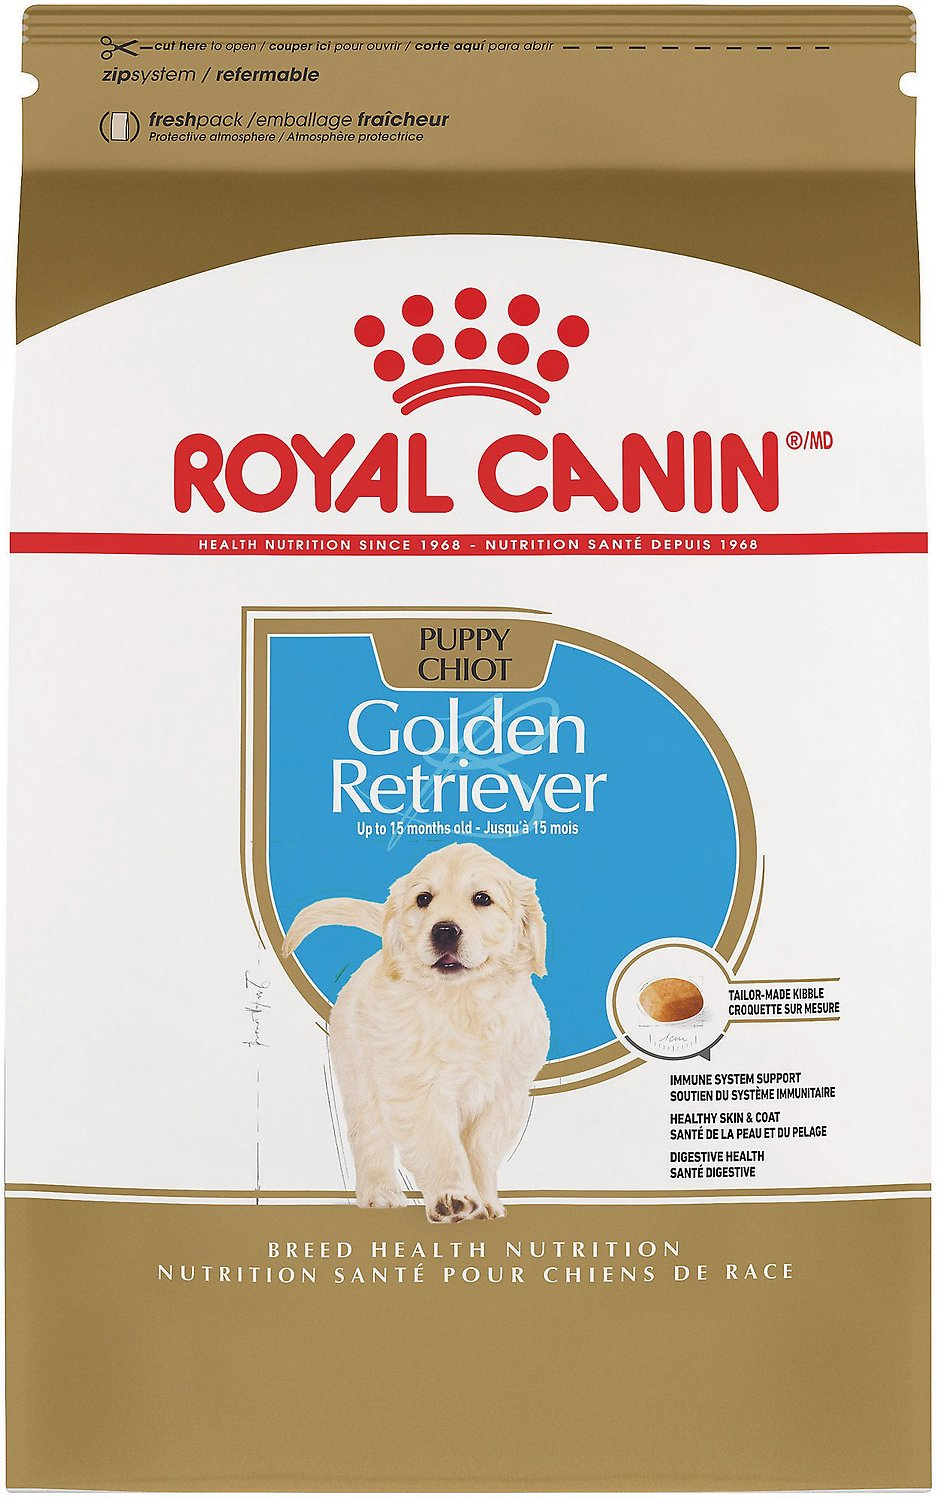 royal canin golden retriever puppy dry dog food 30 lb bag. Black Bedroom Furniture Sets. Home Design Ideas